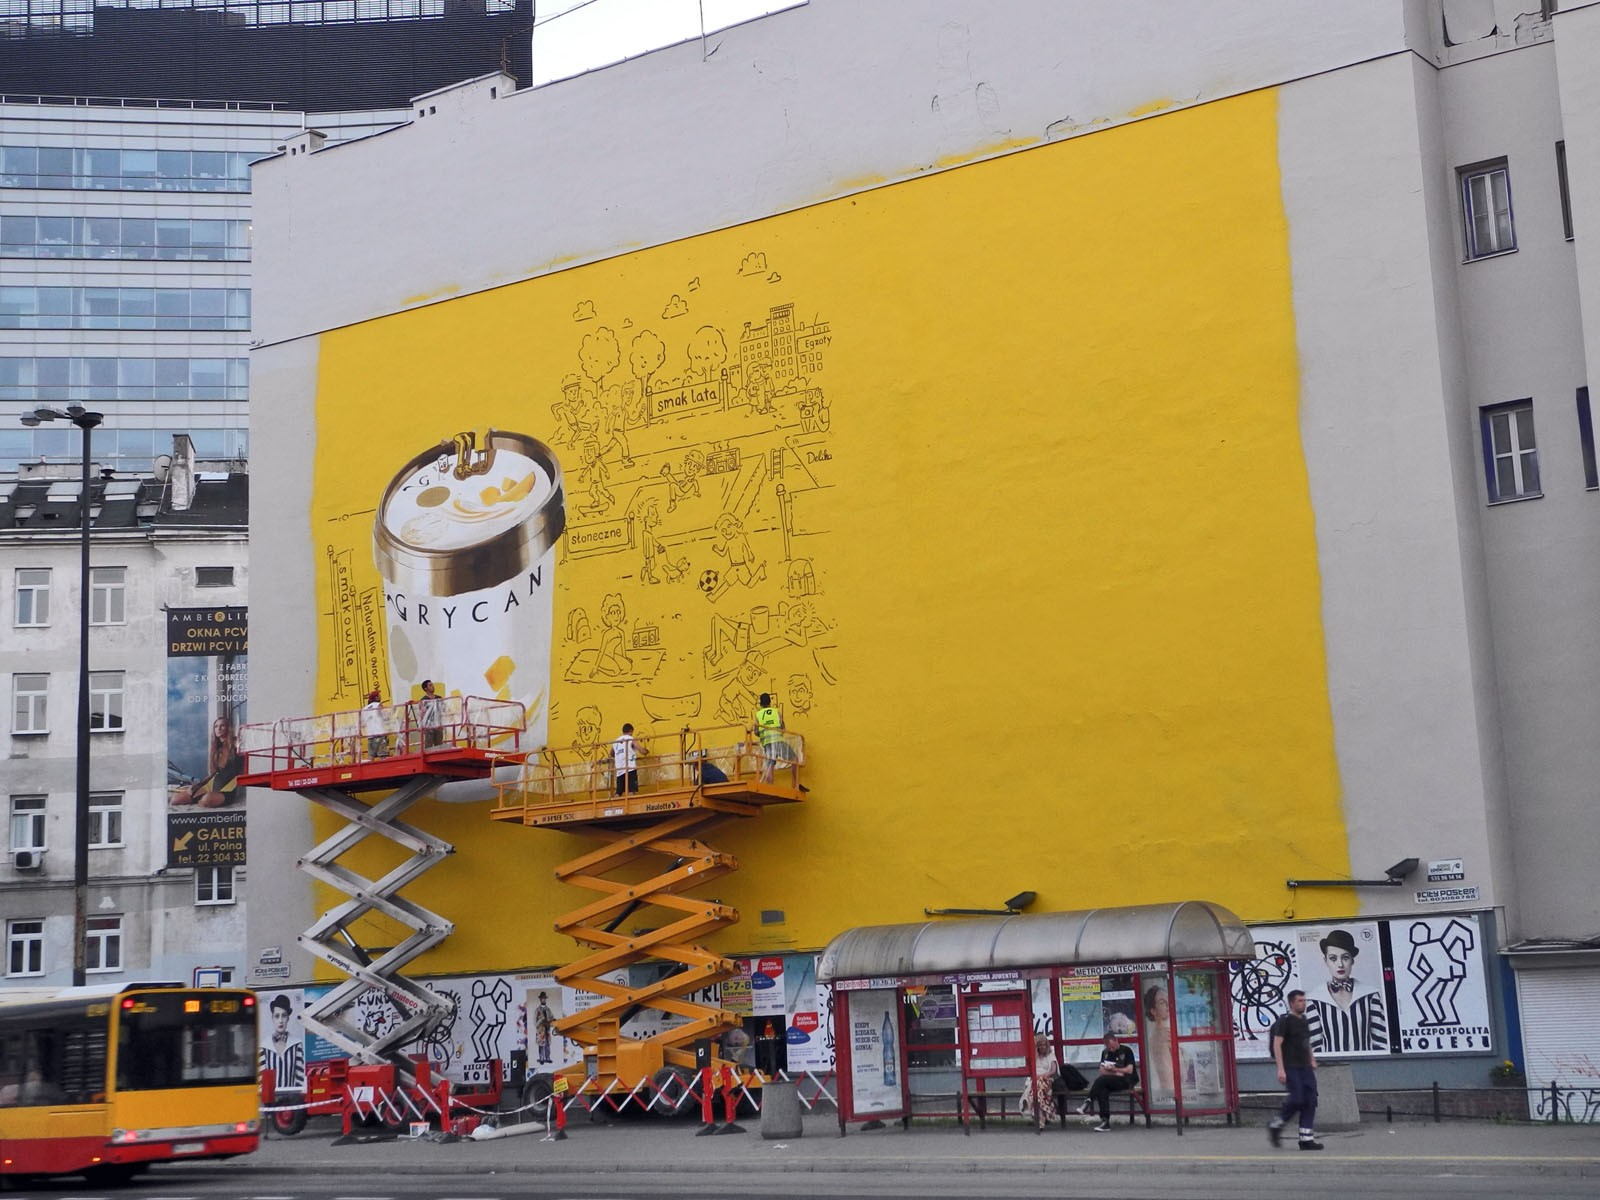 Handpainting advertising mural for Grycan - Warsaw Politechnika subway station | Grycan Yoghurt Ice Cream | Portfolio